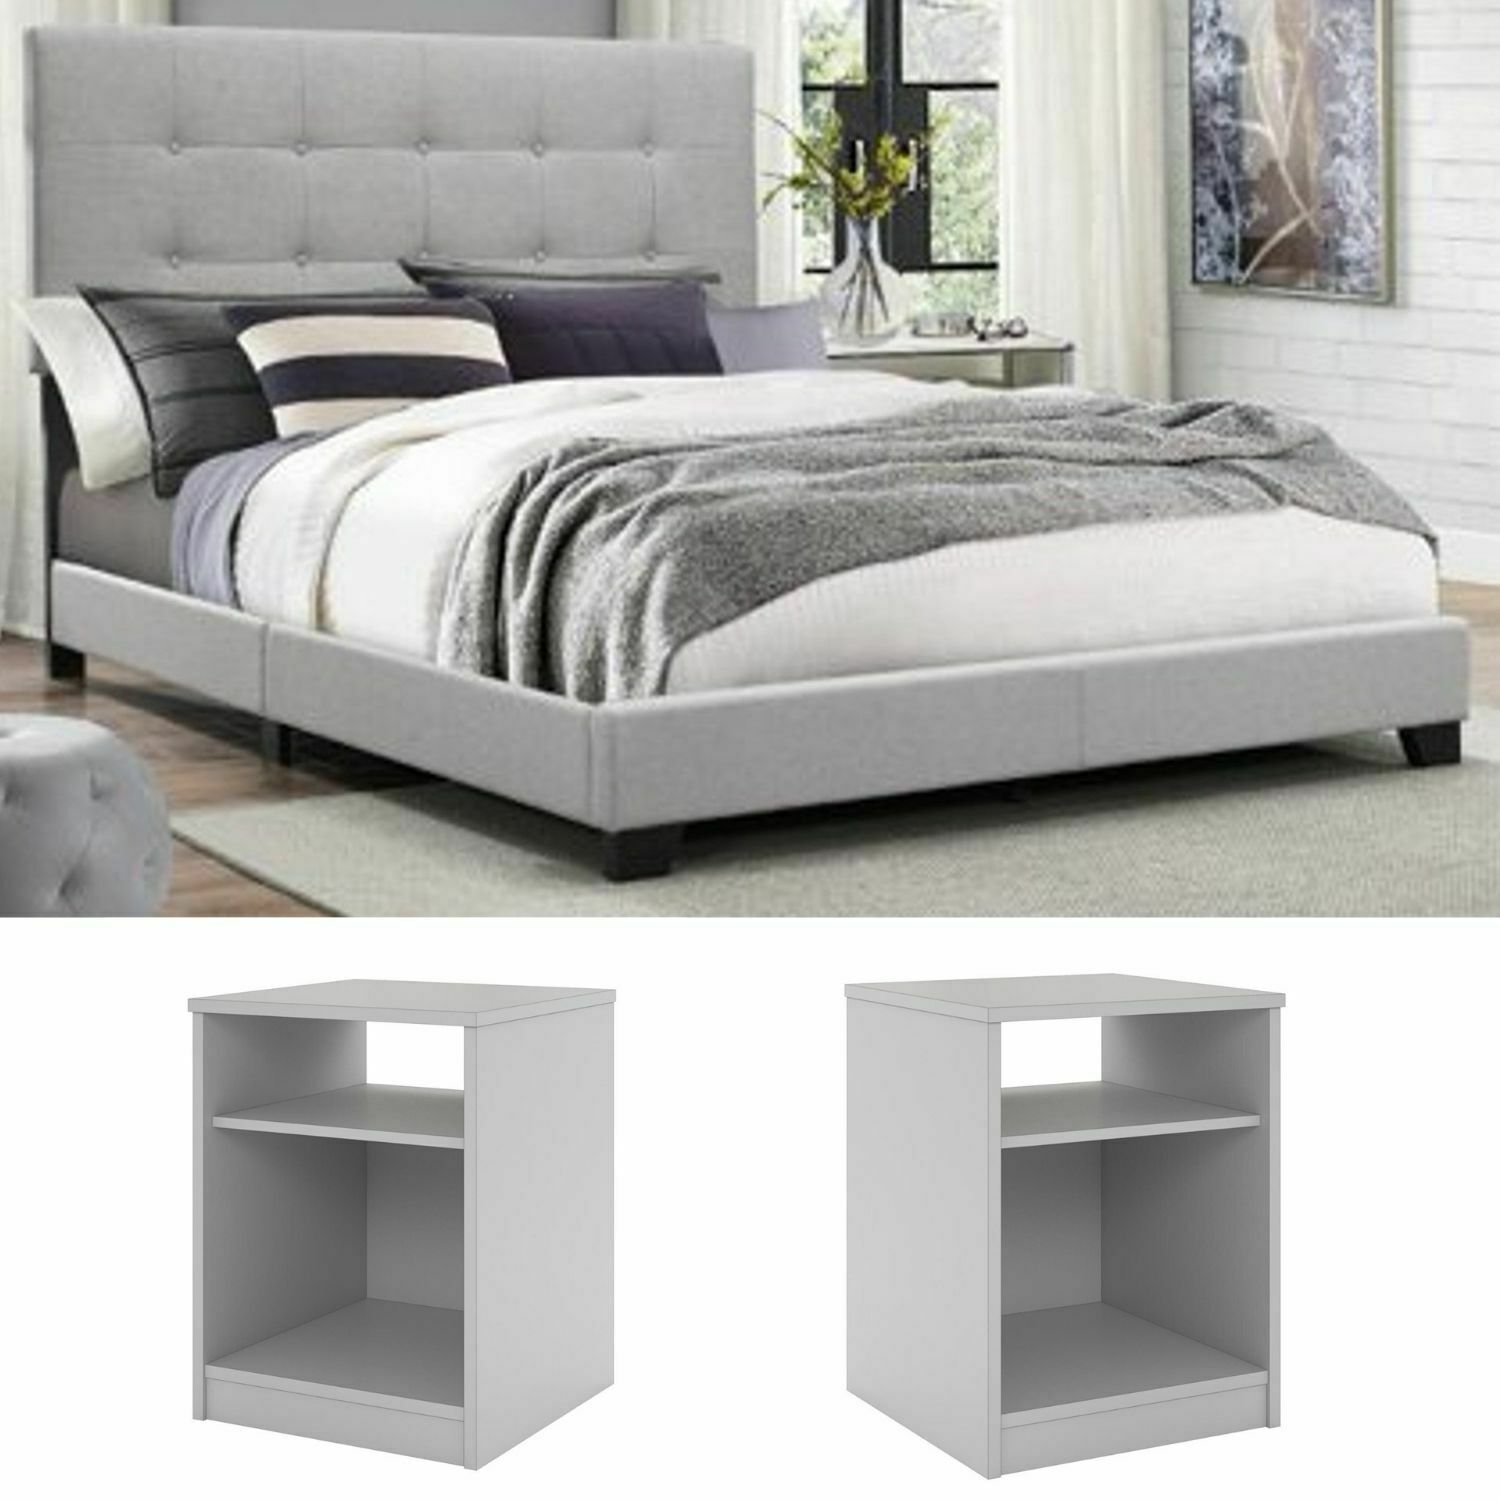 3piece King Size Bedroom Set Furniture Grey Fabric Platform Bed White Nightstand For Sale Online